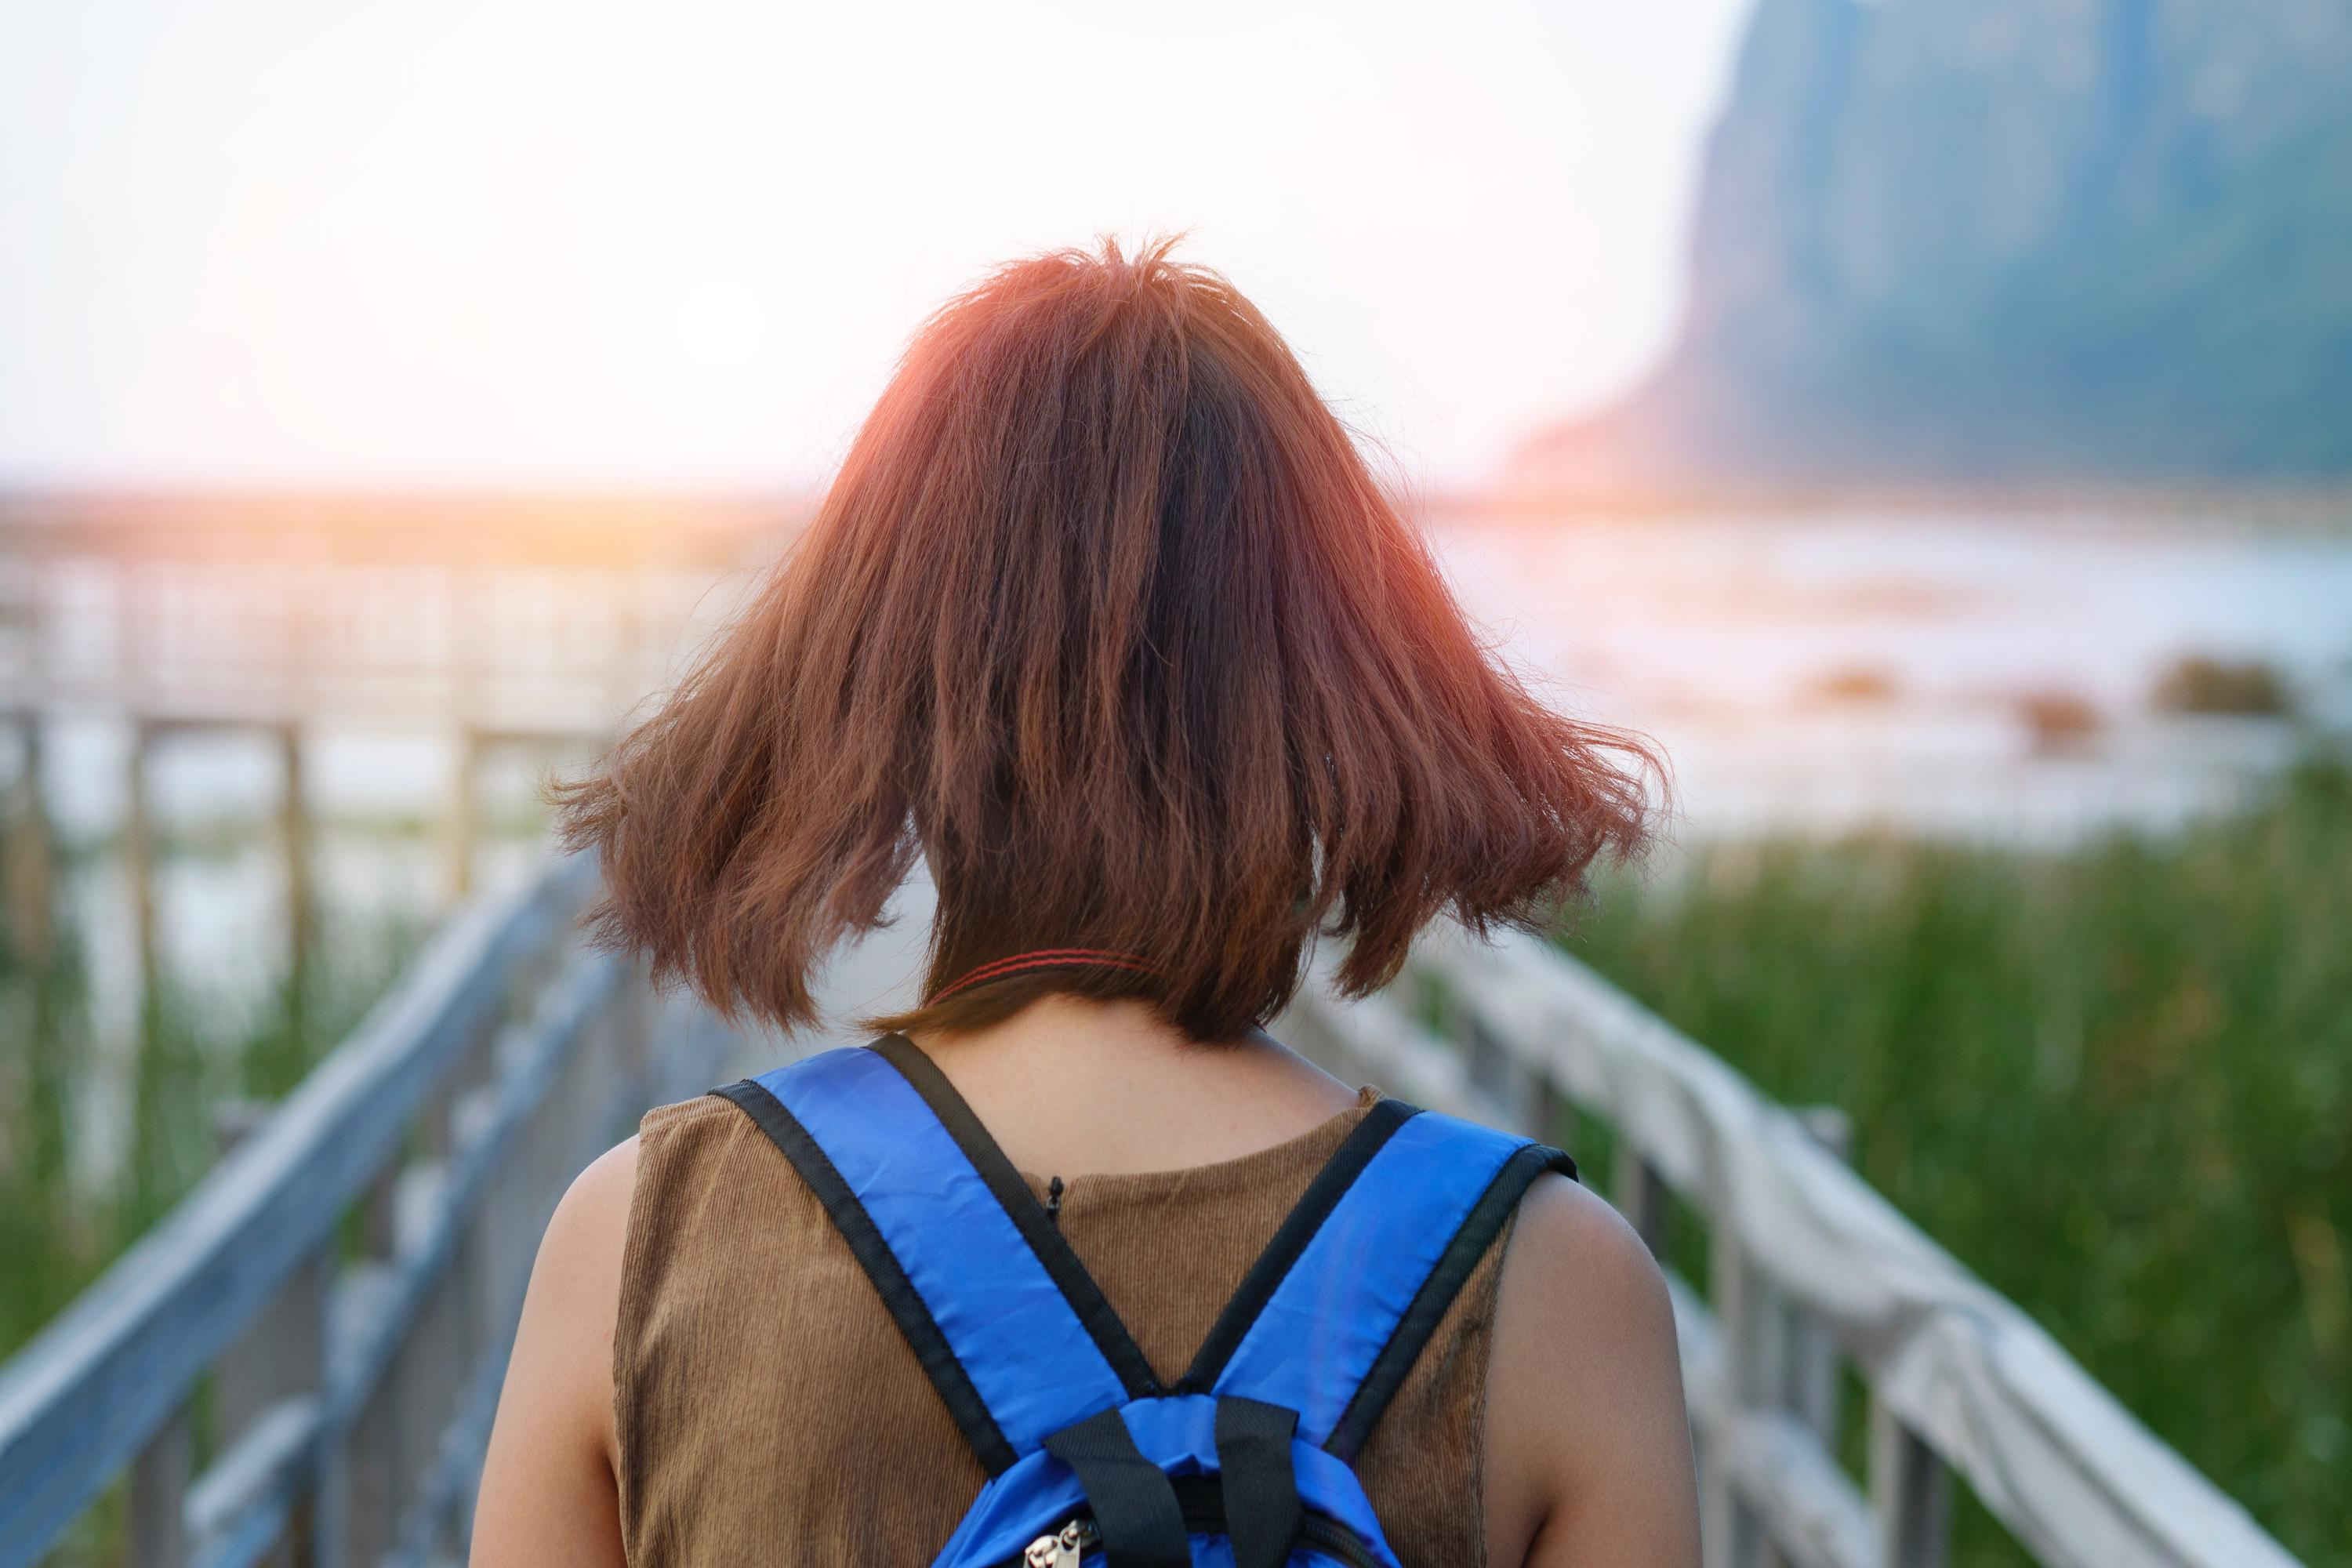 women carrying backpack in warm sunny location